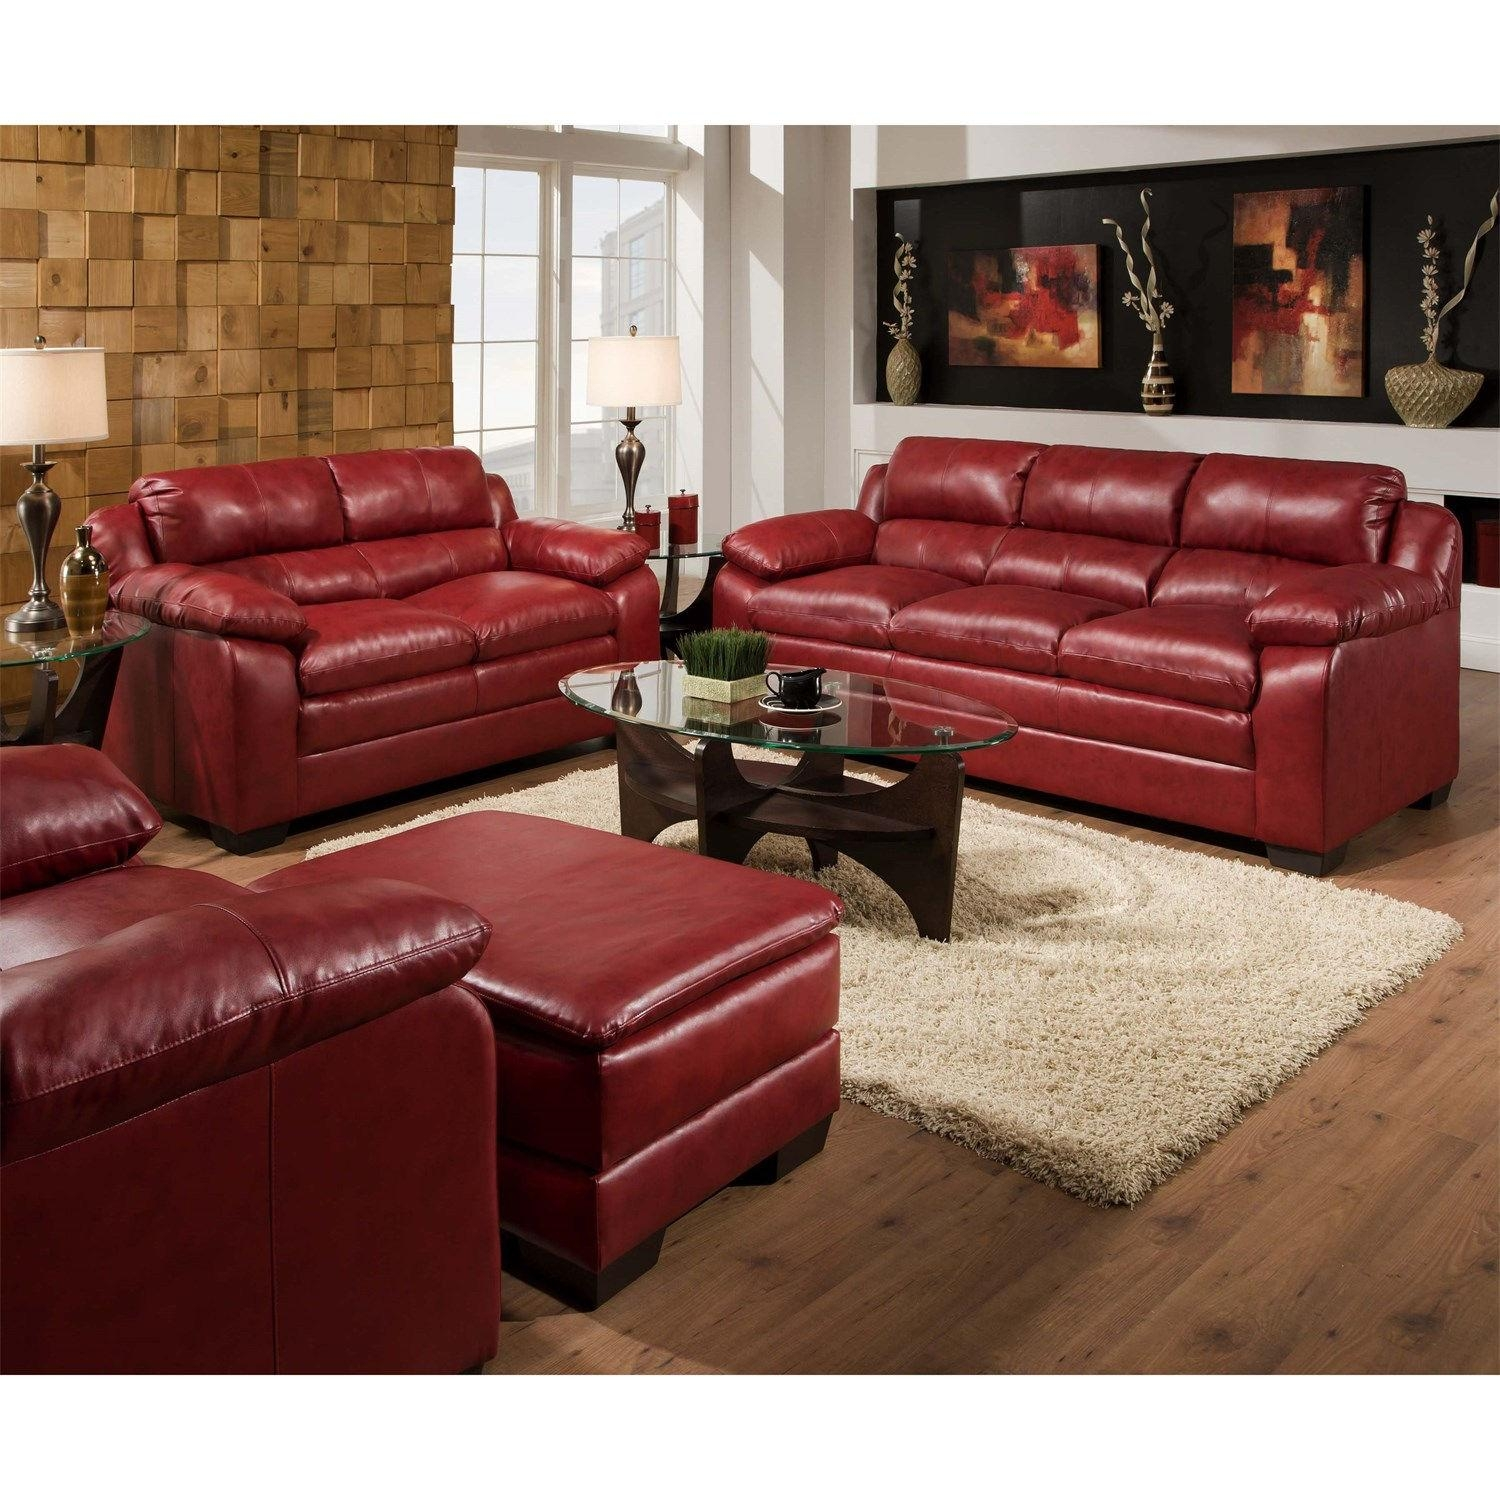 Simmons Bonded Leather Sofa With Inspiration Hd Pictures 20560 Intended For Simmons Bonded Leather Sofas (View 8 of 20)